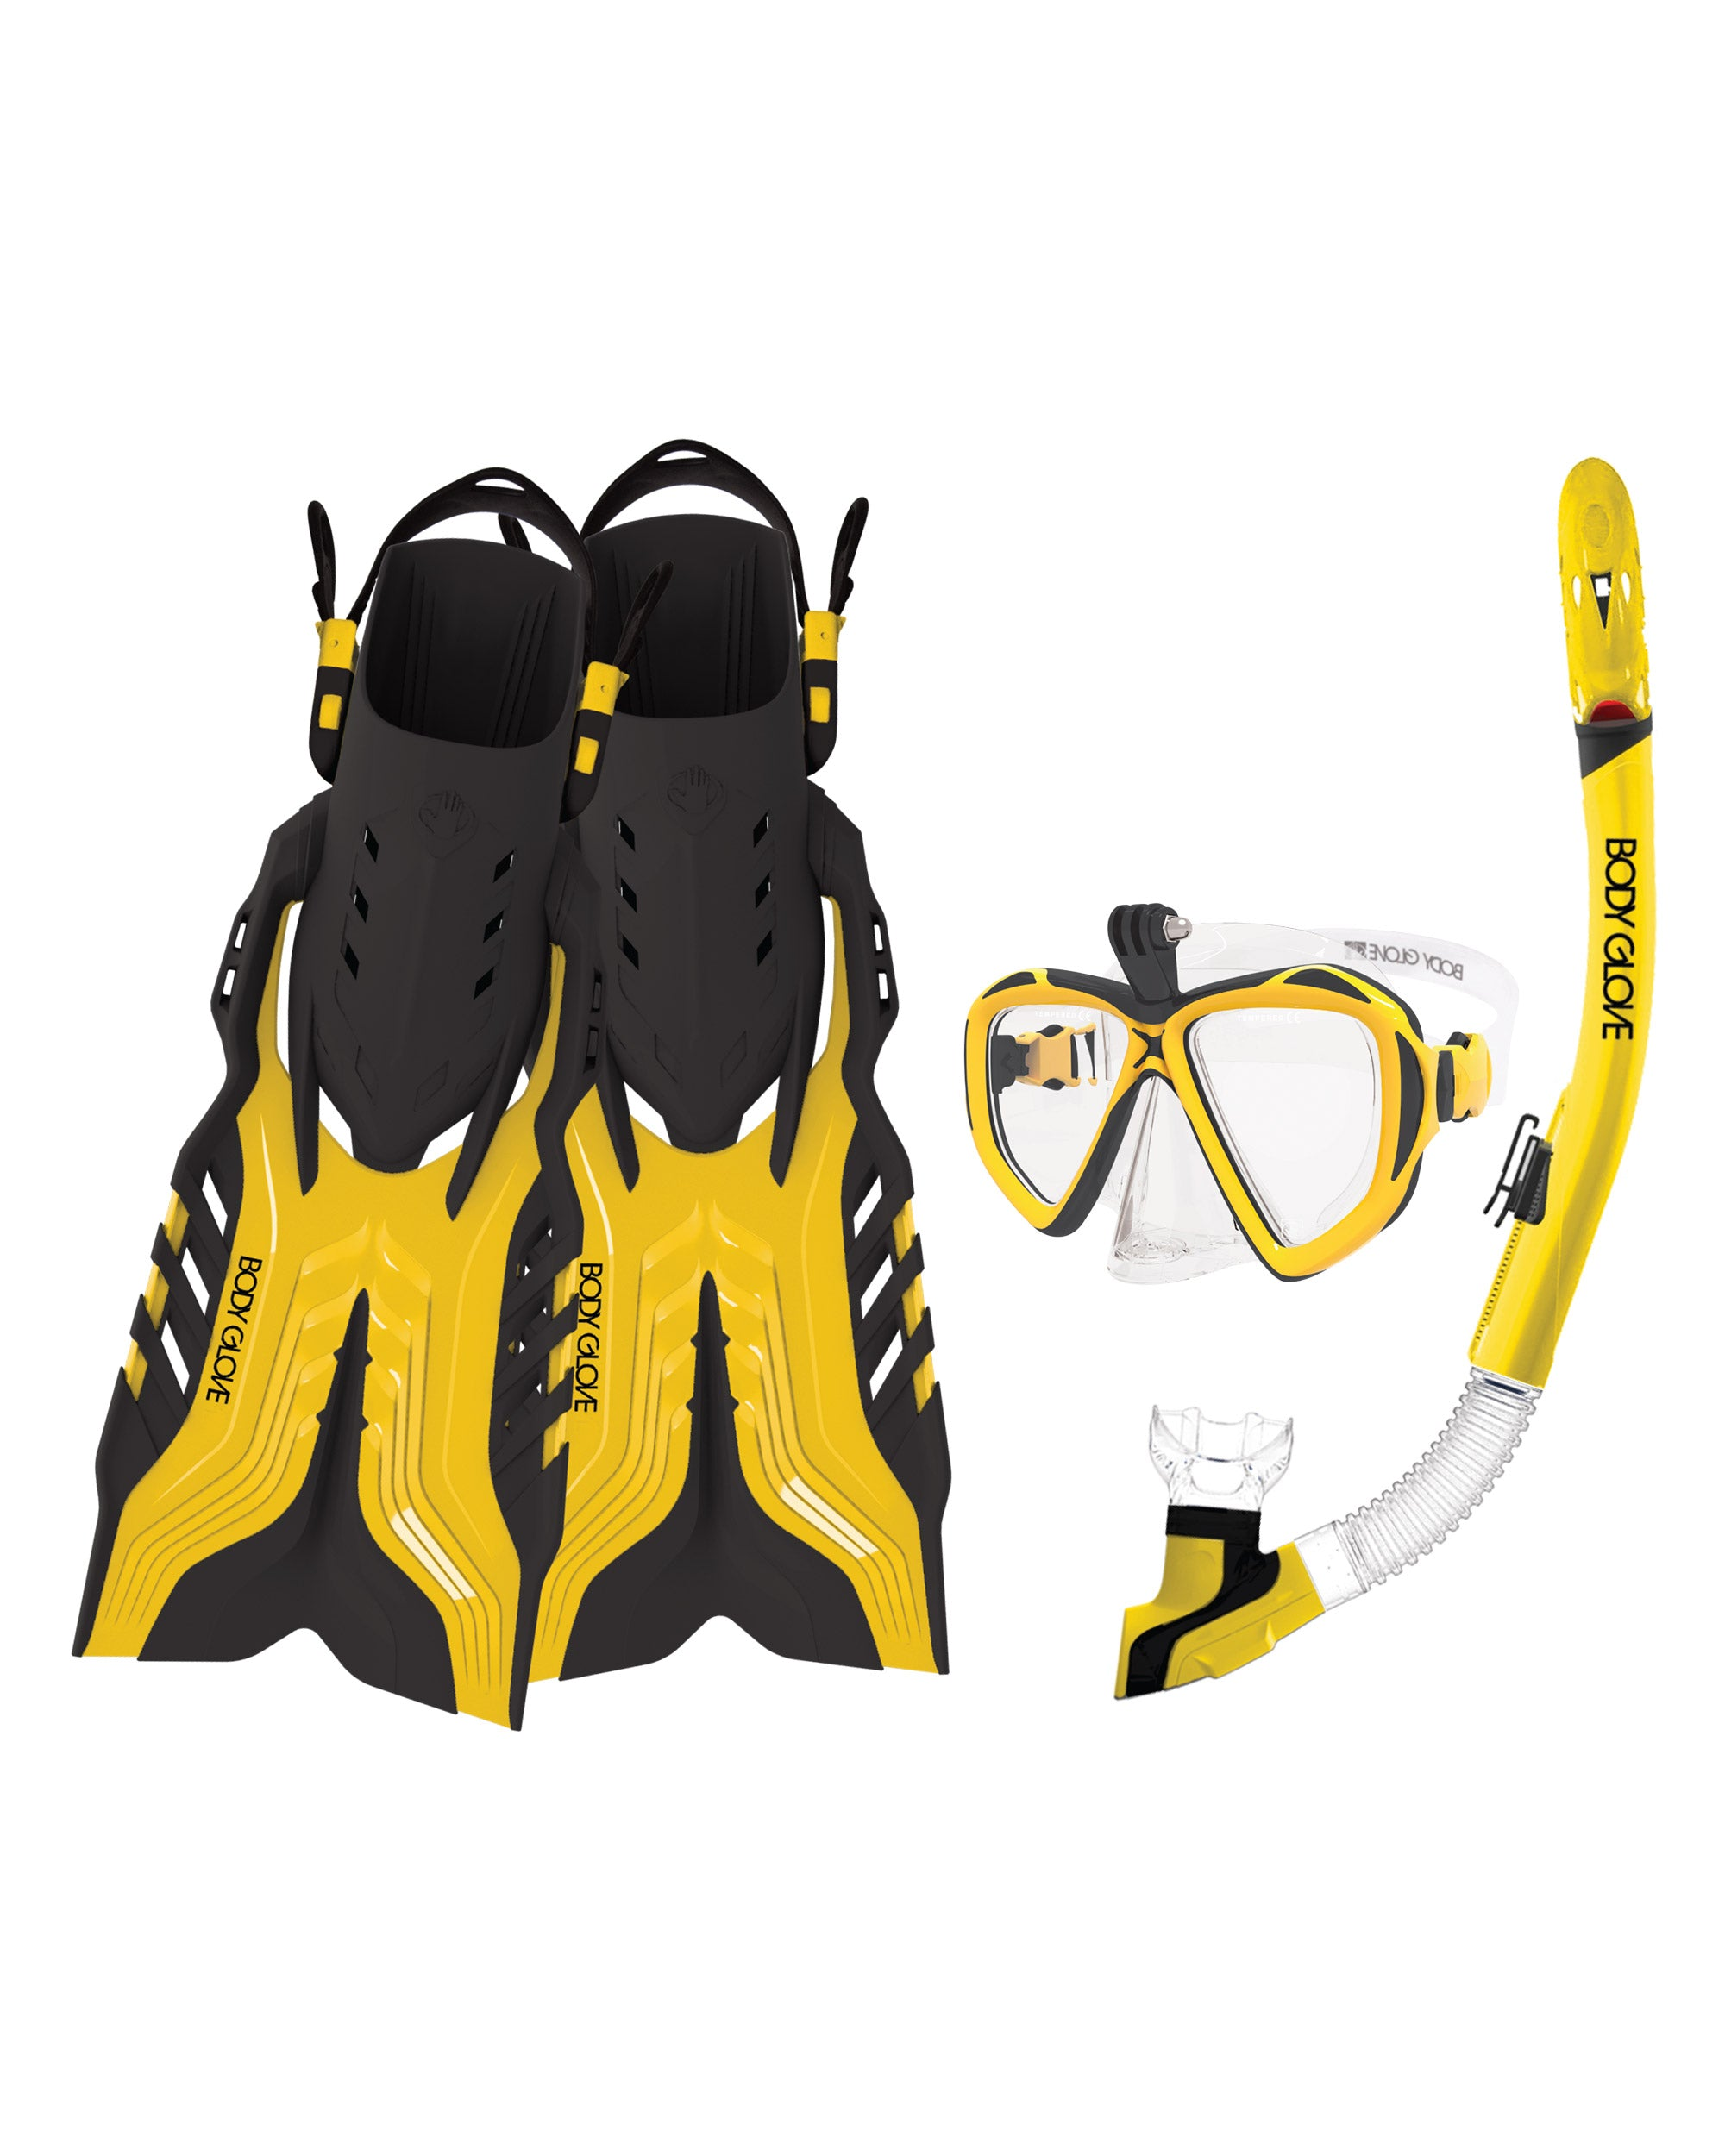 Passage Mask/Snorkel/Fin Snorkeling Set - Yellow/White/Black